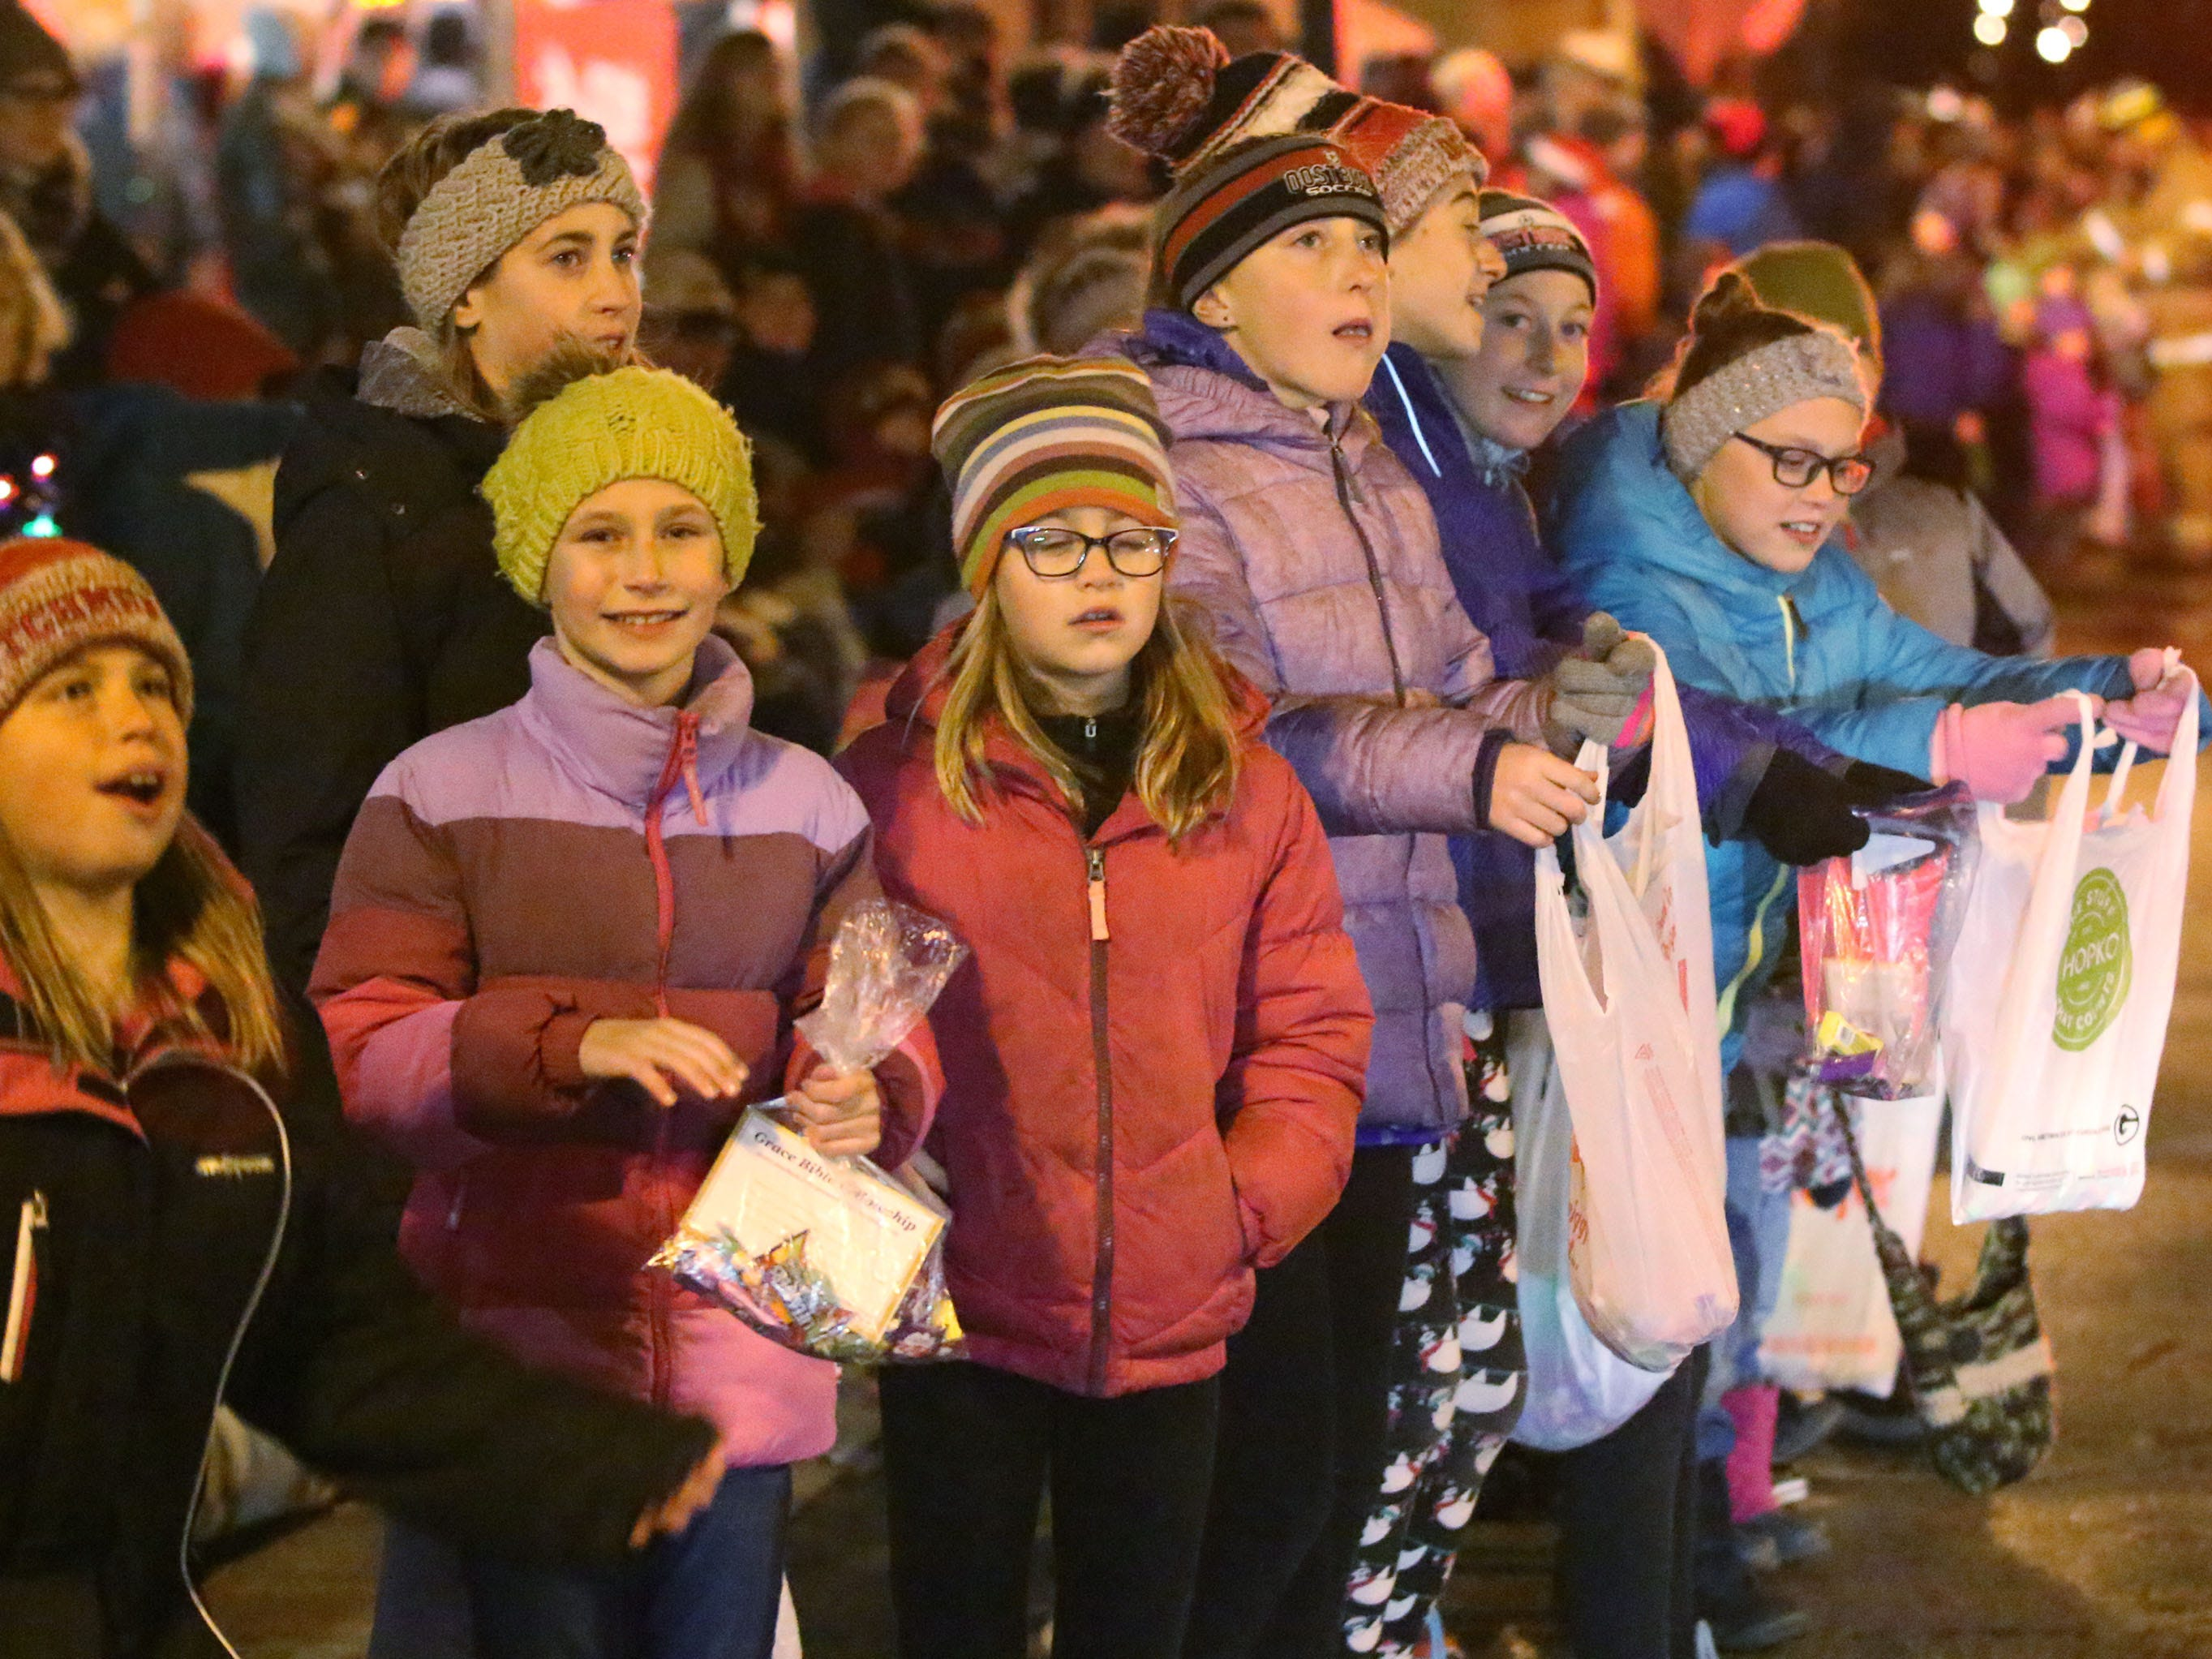 Children came prepared with bags for candy to be distributed at the Oostburg Christmas Parade, Saturday, November 24, 2018, in Oostburg, Wis.